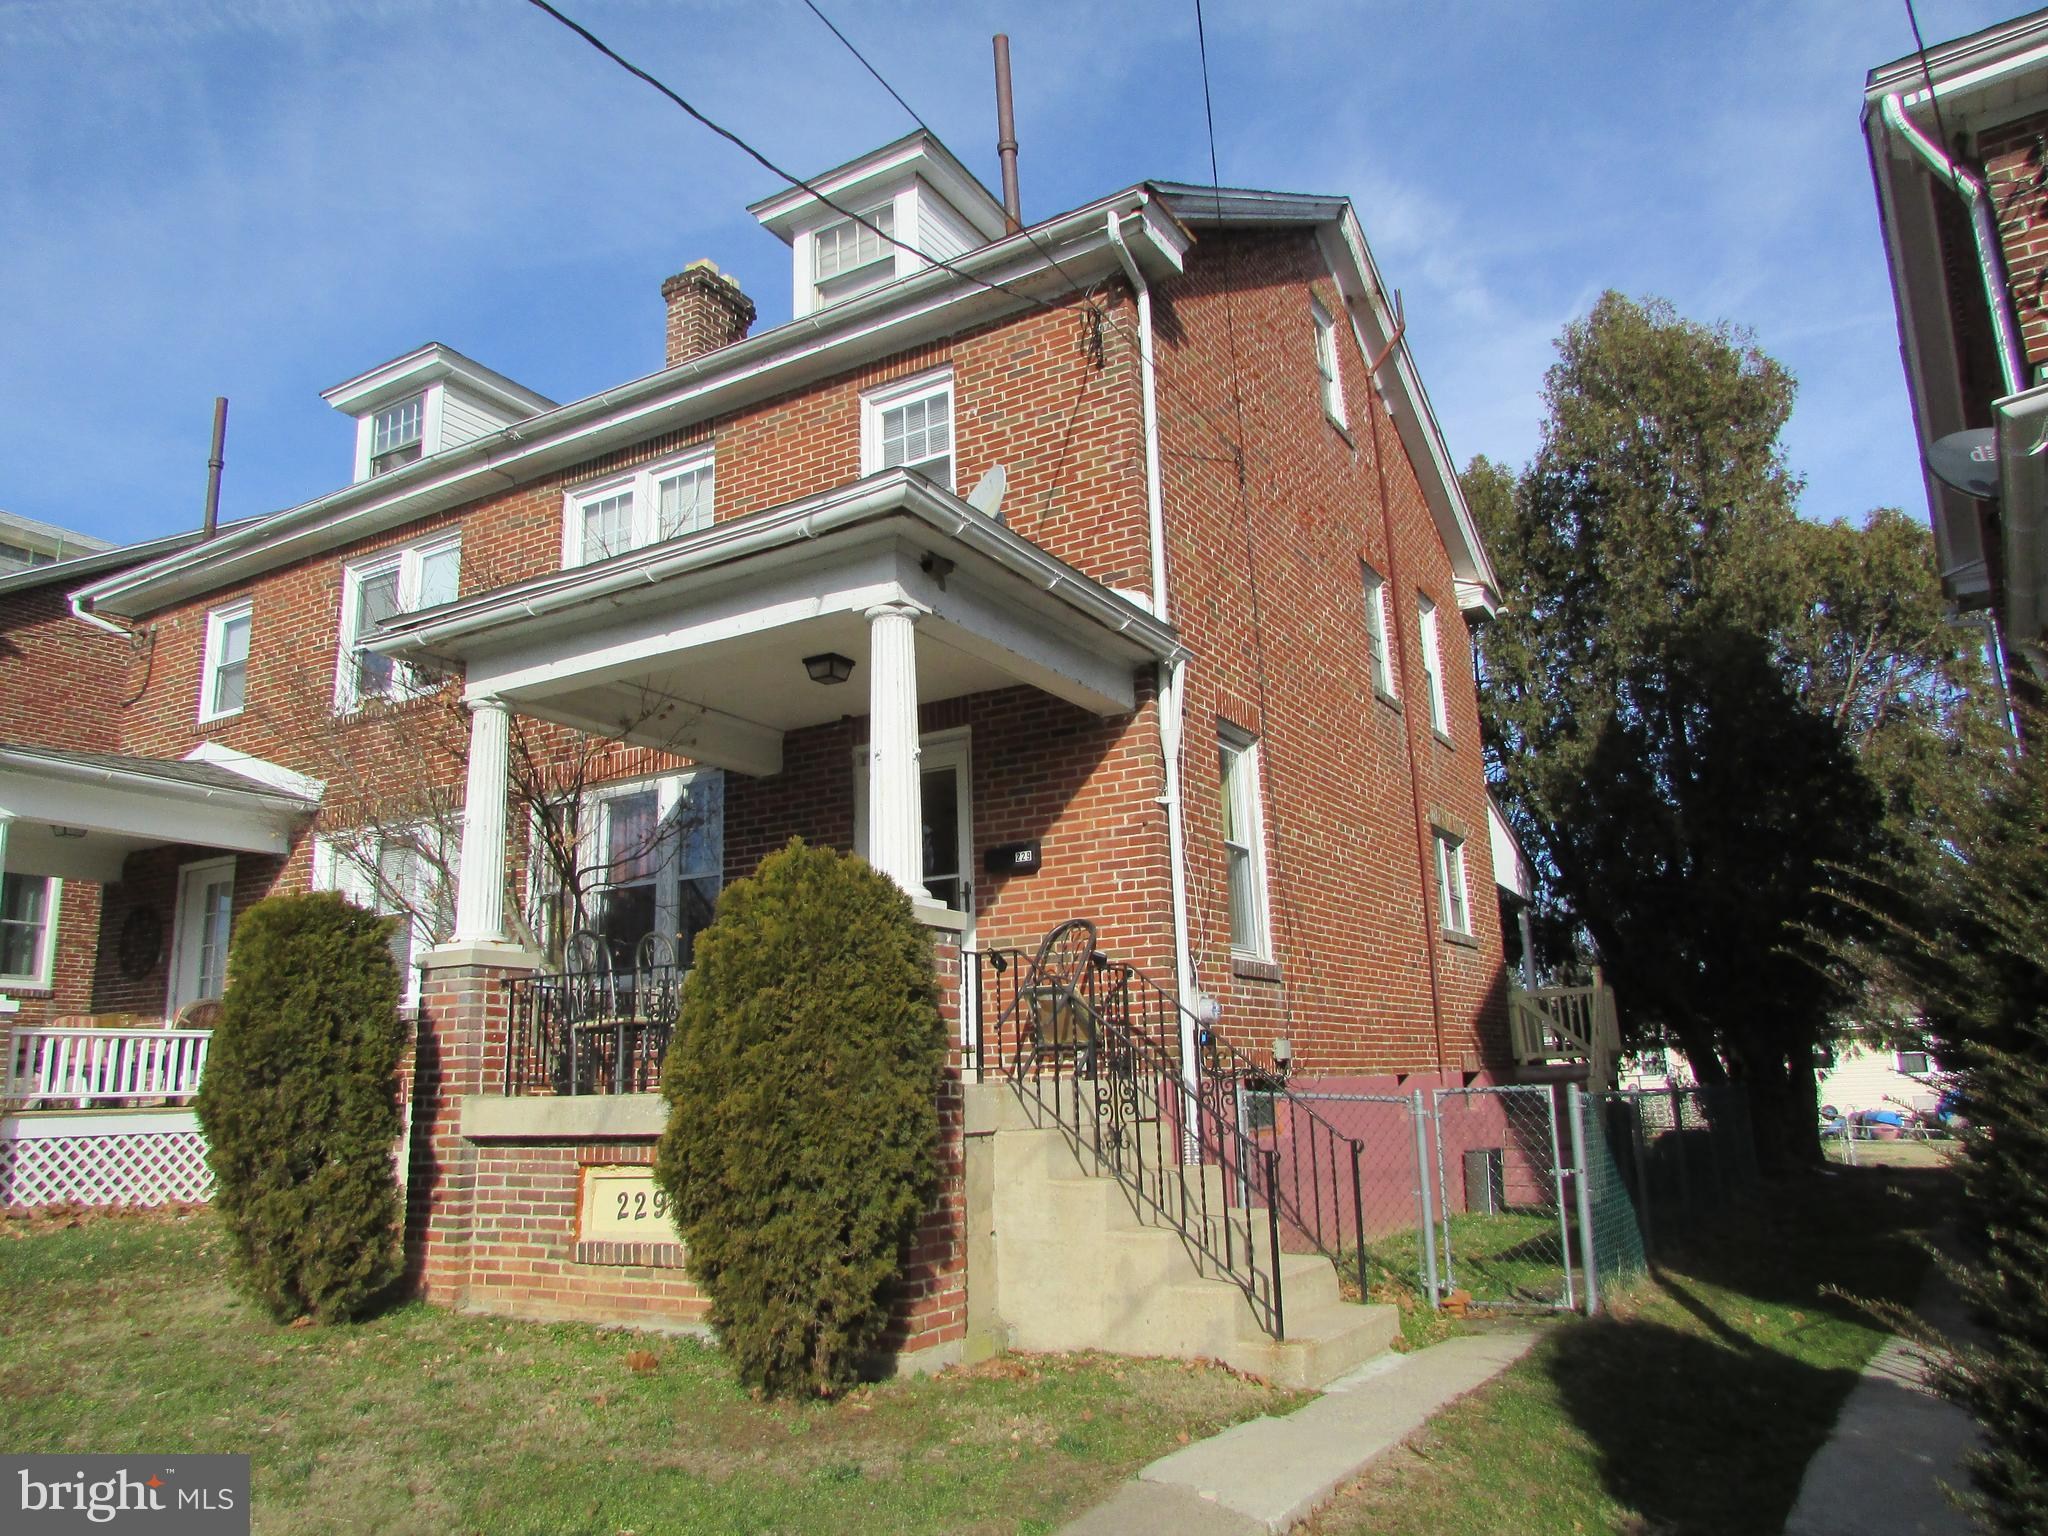 229 HANLEY PLACE, READING, PA 19611